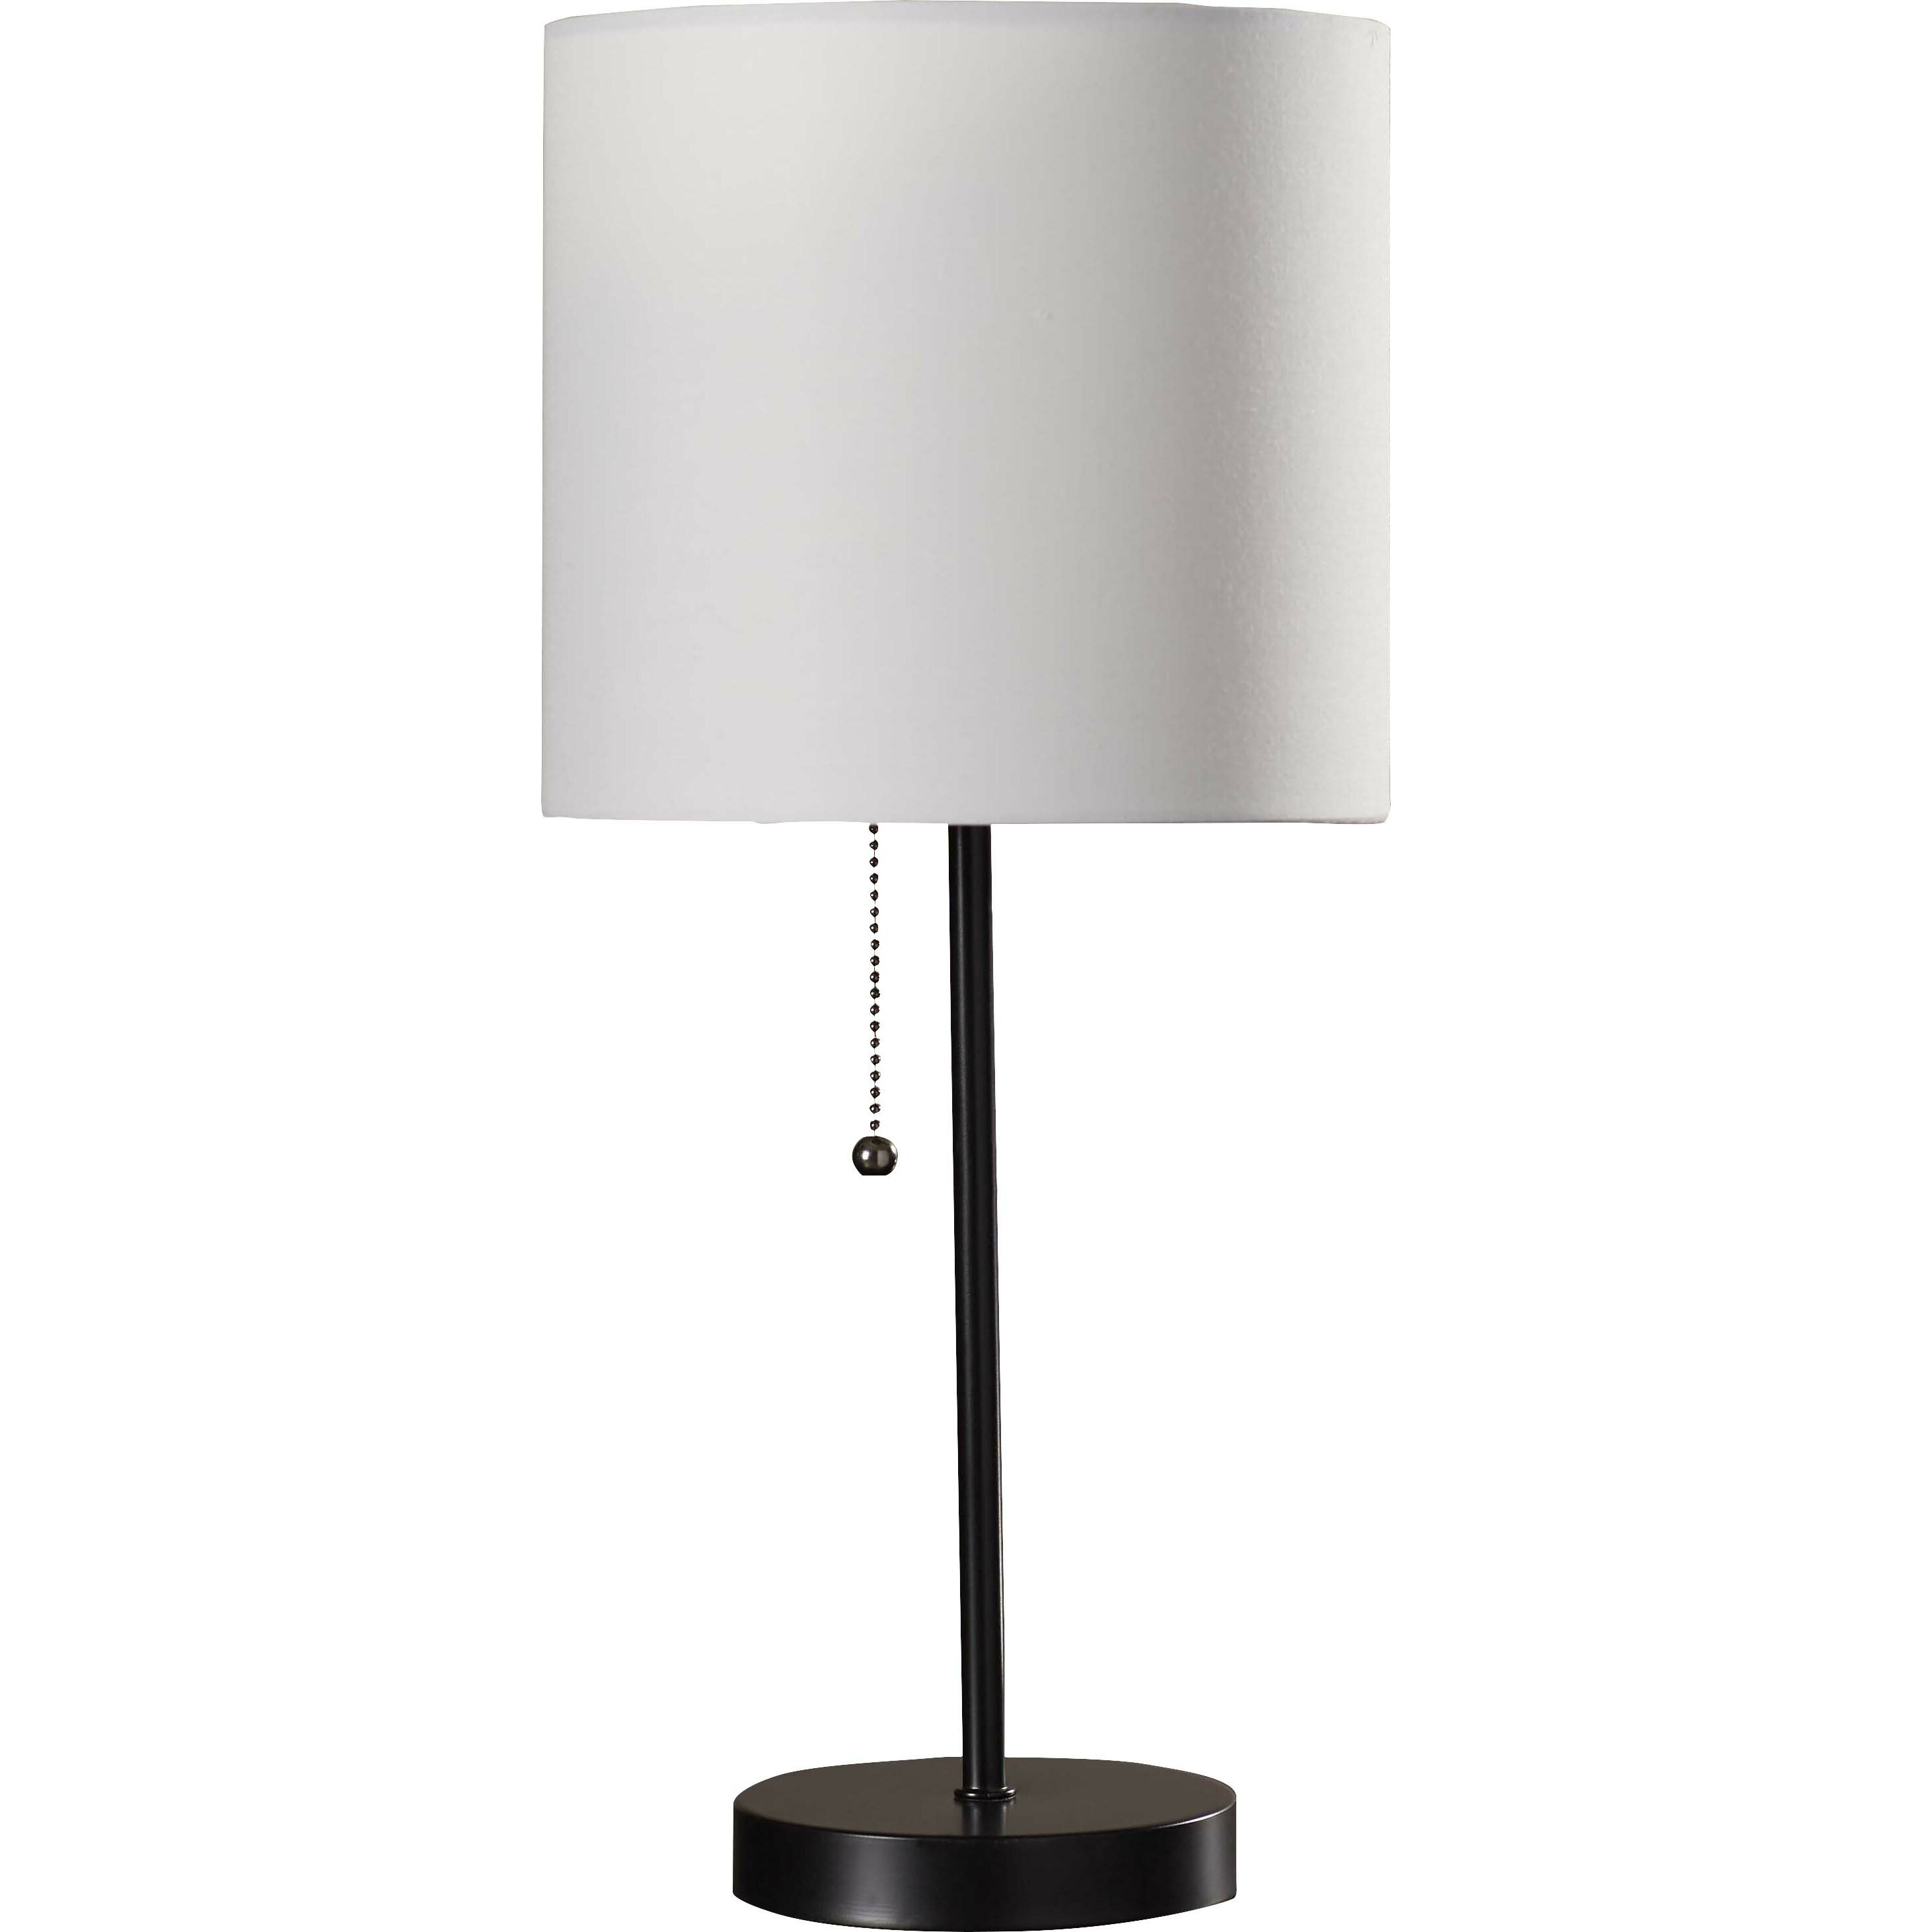 design tom 19 table lamp with drum shade reviews wayfair. Black Bedroom Furniture Sets. Home Design Ideas